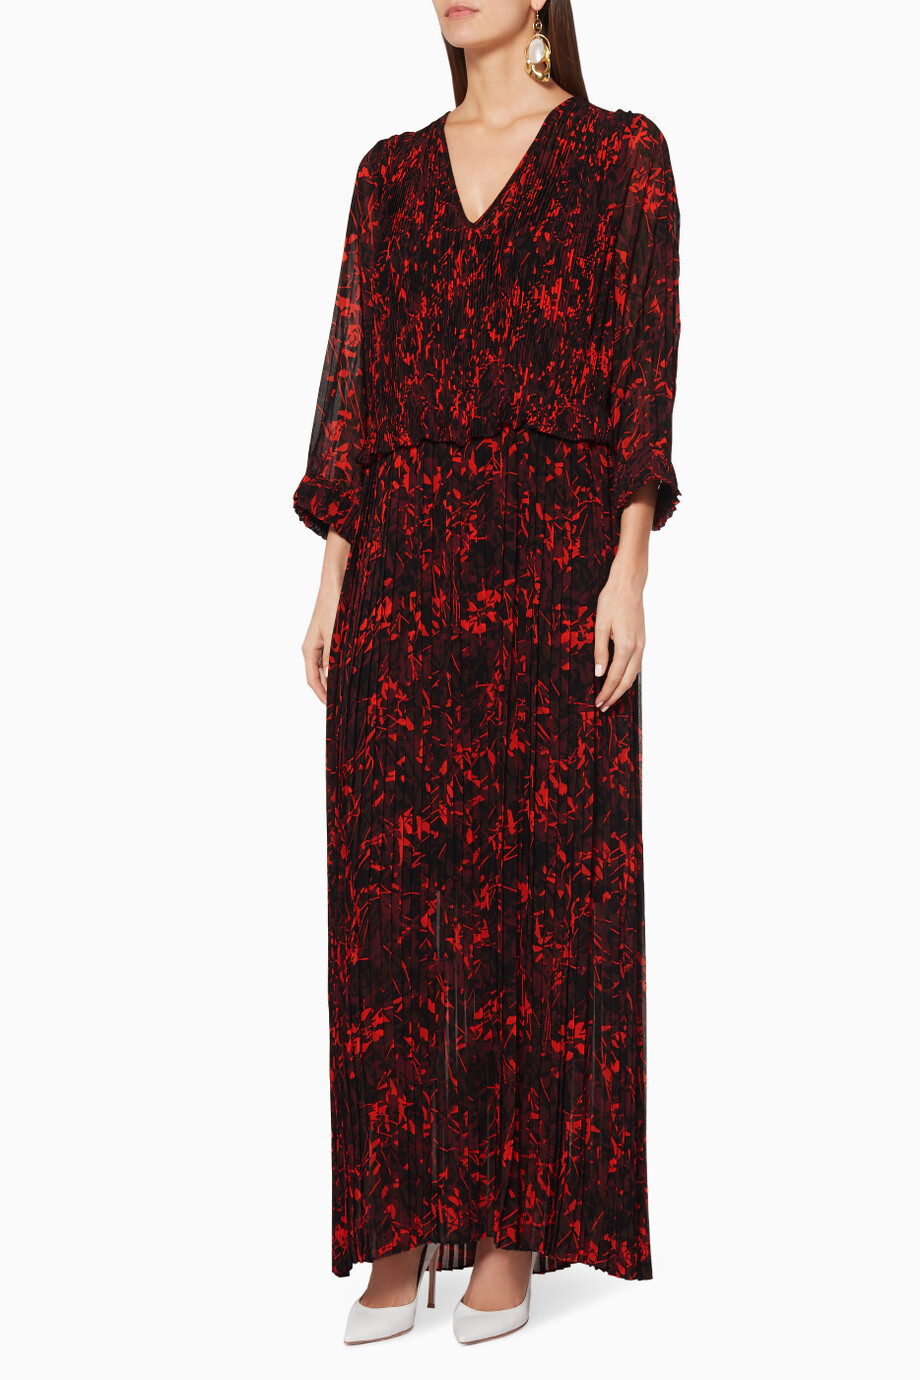 6b84aa14039 Shop By Malene Birger Multicolour Red & Black Printed Midotter Maxi ...